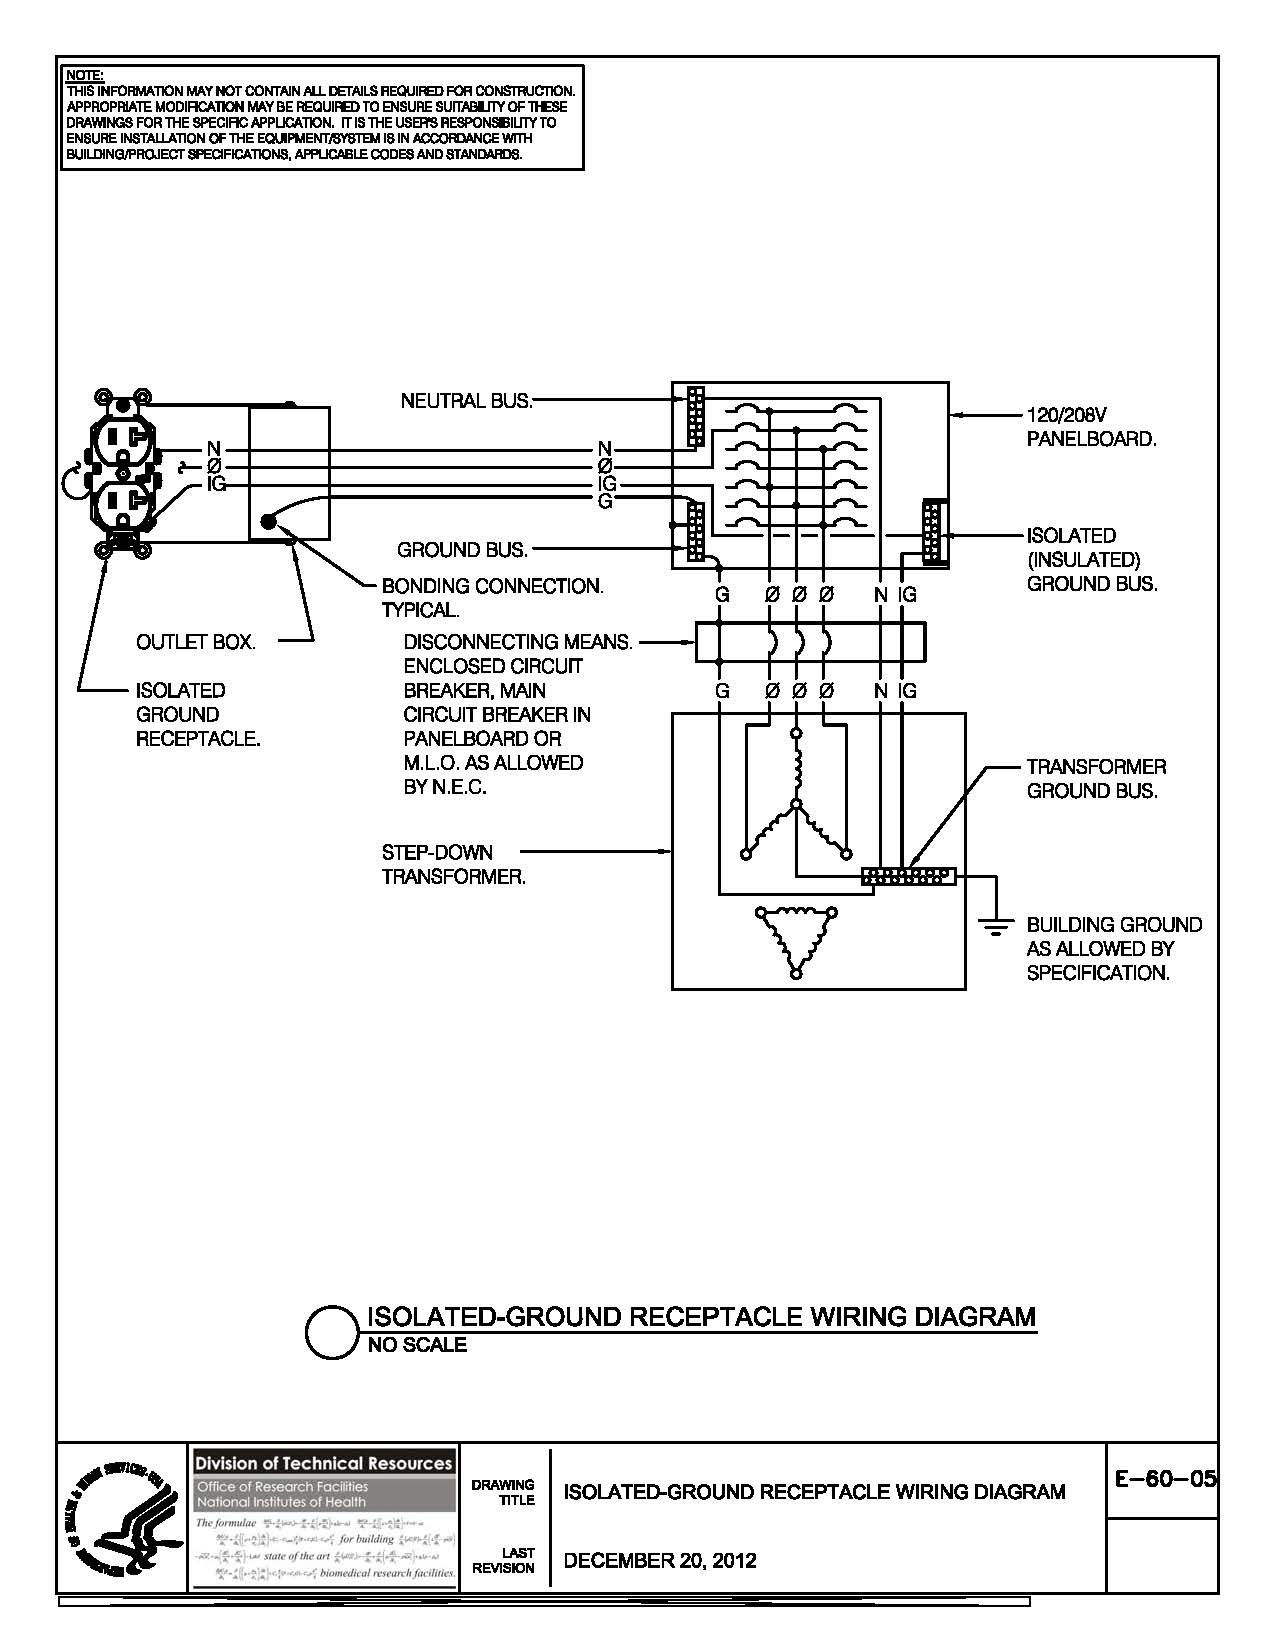 duplex pump control panel wiring diagram Collection-Duplex Pump Control Panel Wiring Diagram Lovely Nih Standard Cad Details 7-a